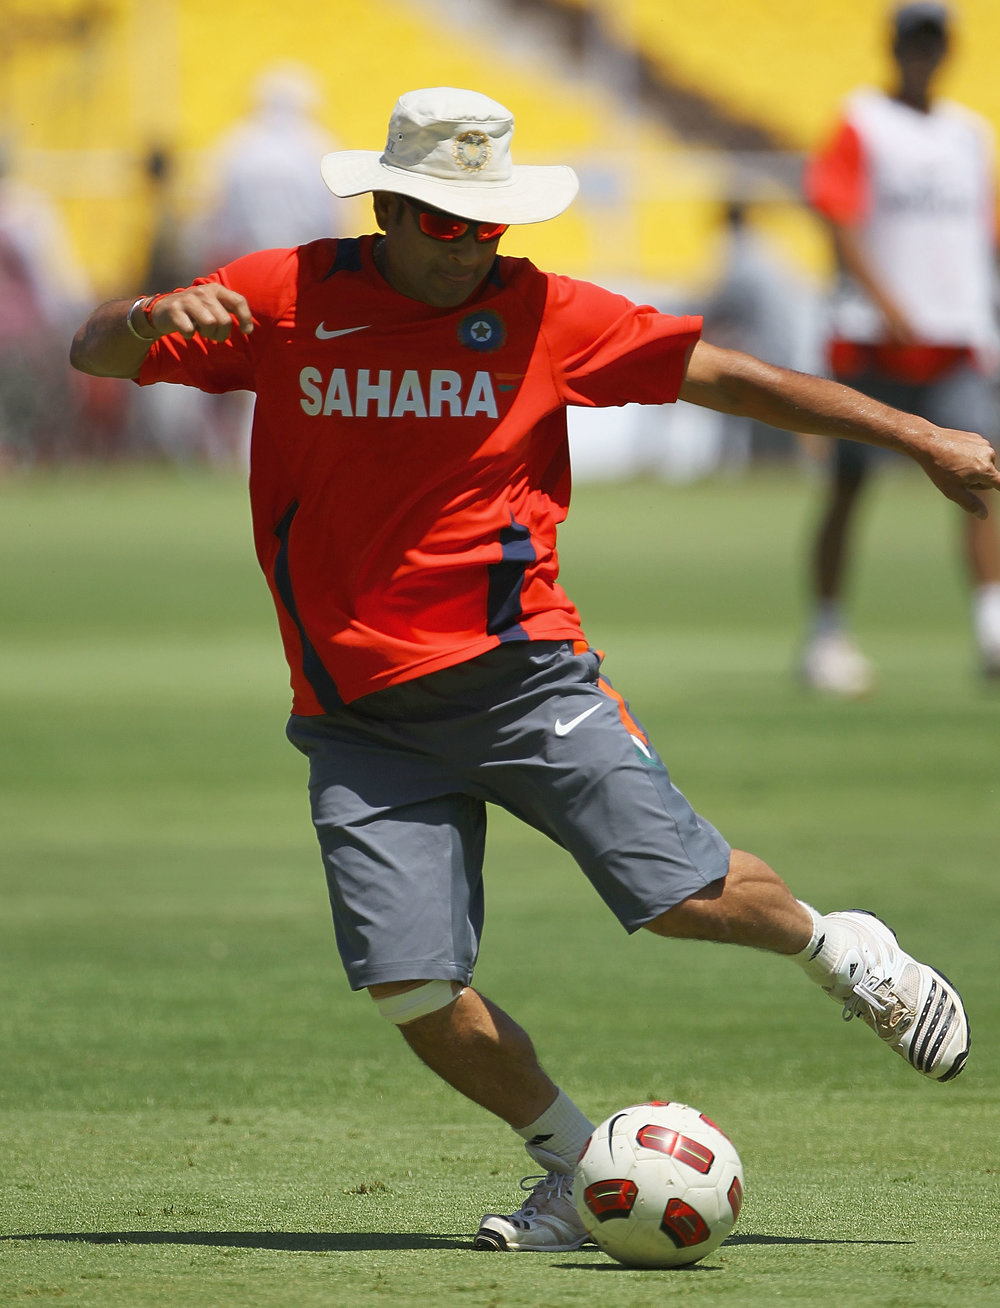 Sachin Tendulkar, former cricket captain and co-owner of the ISL's Kerala Blasters, plays football during an India Nets Session at the Sardar Patel Gujarat Stadium in March 2011.  Photo by Matthew Lewis/Getty Images